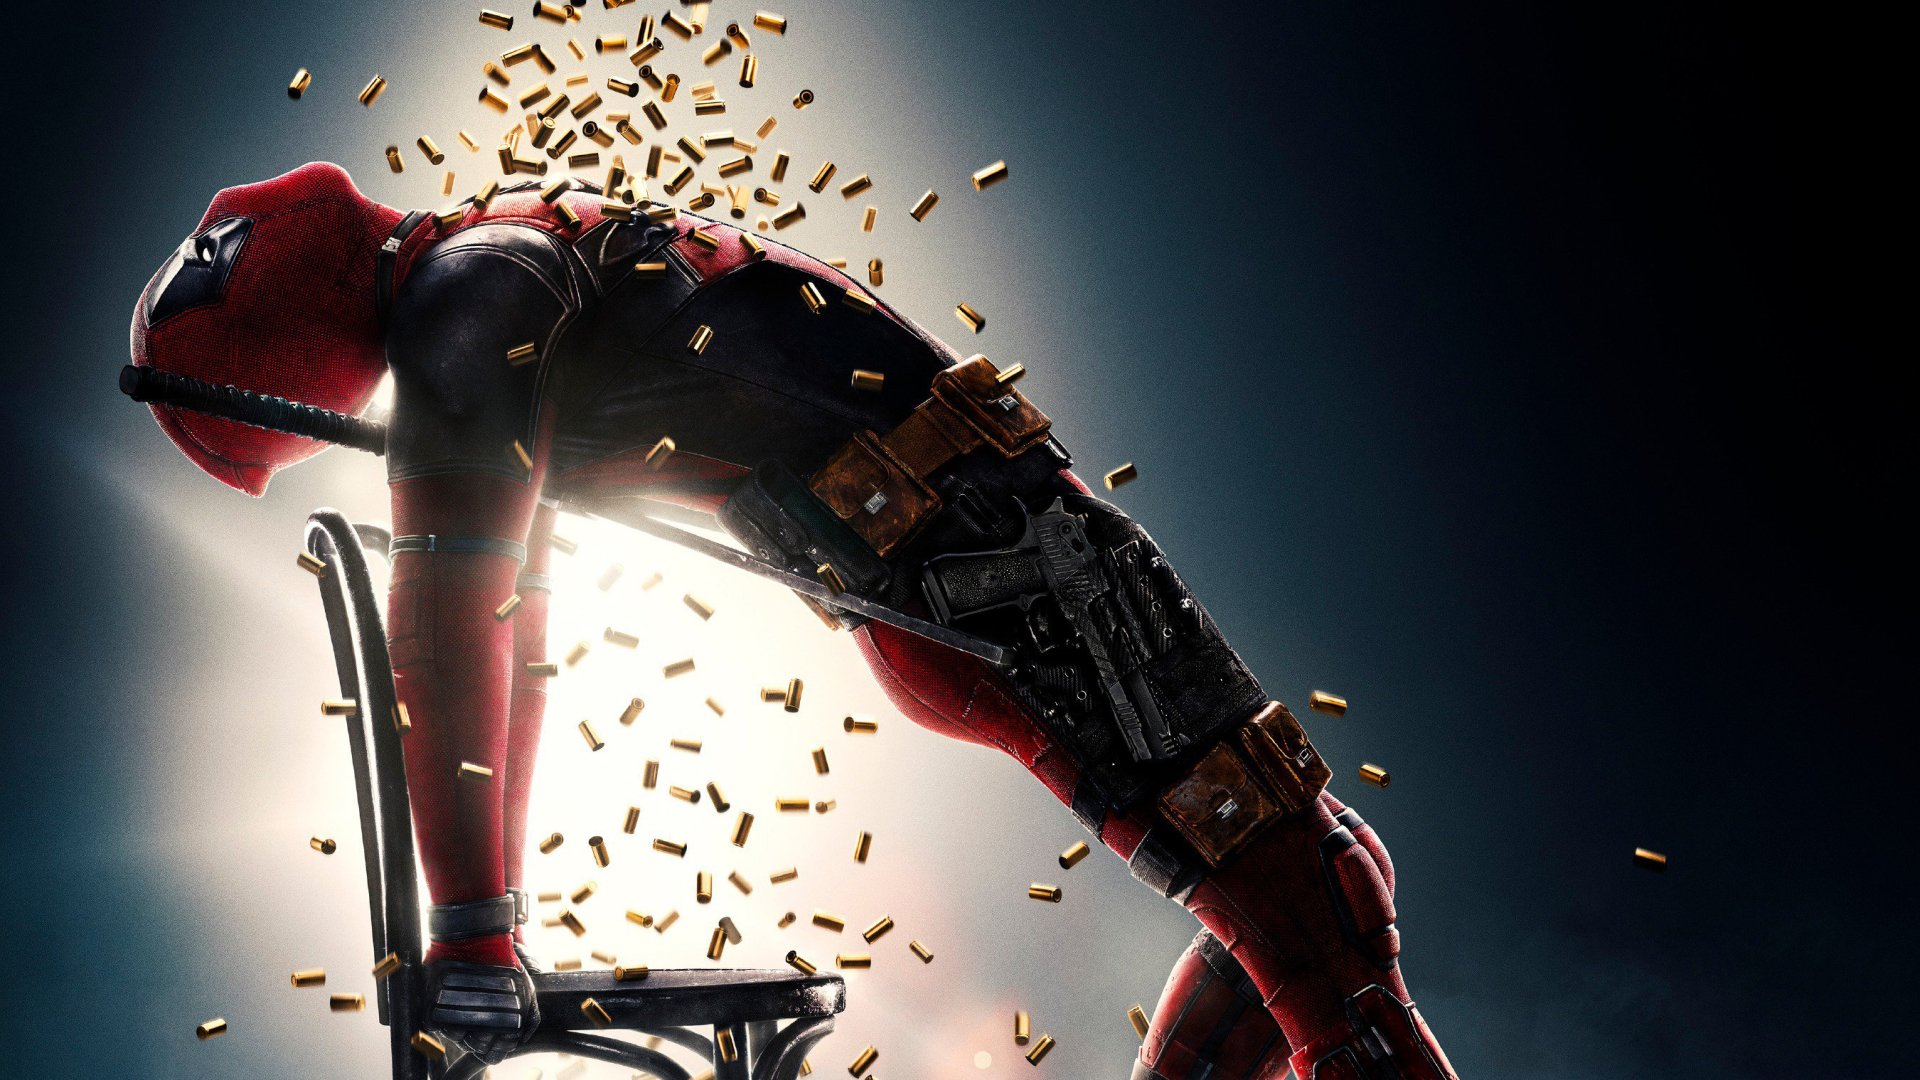 Filme - Deadpool 2  Deadpool Ryan Reynolds Wade Wilson Antihero Superhero Wallpaper